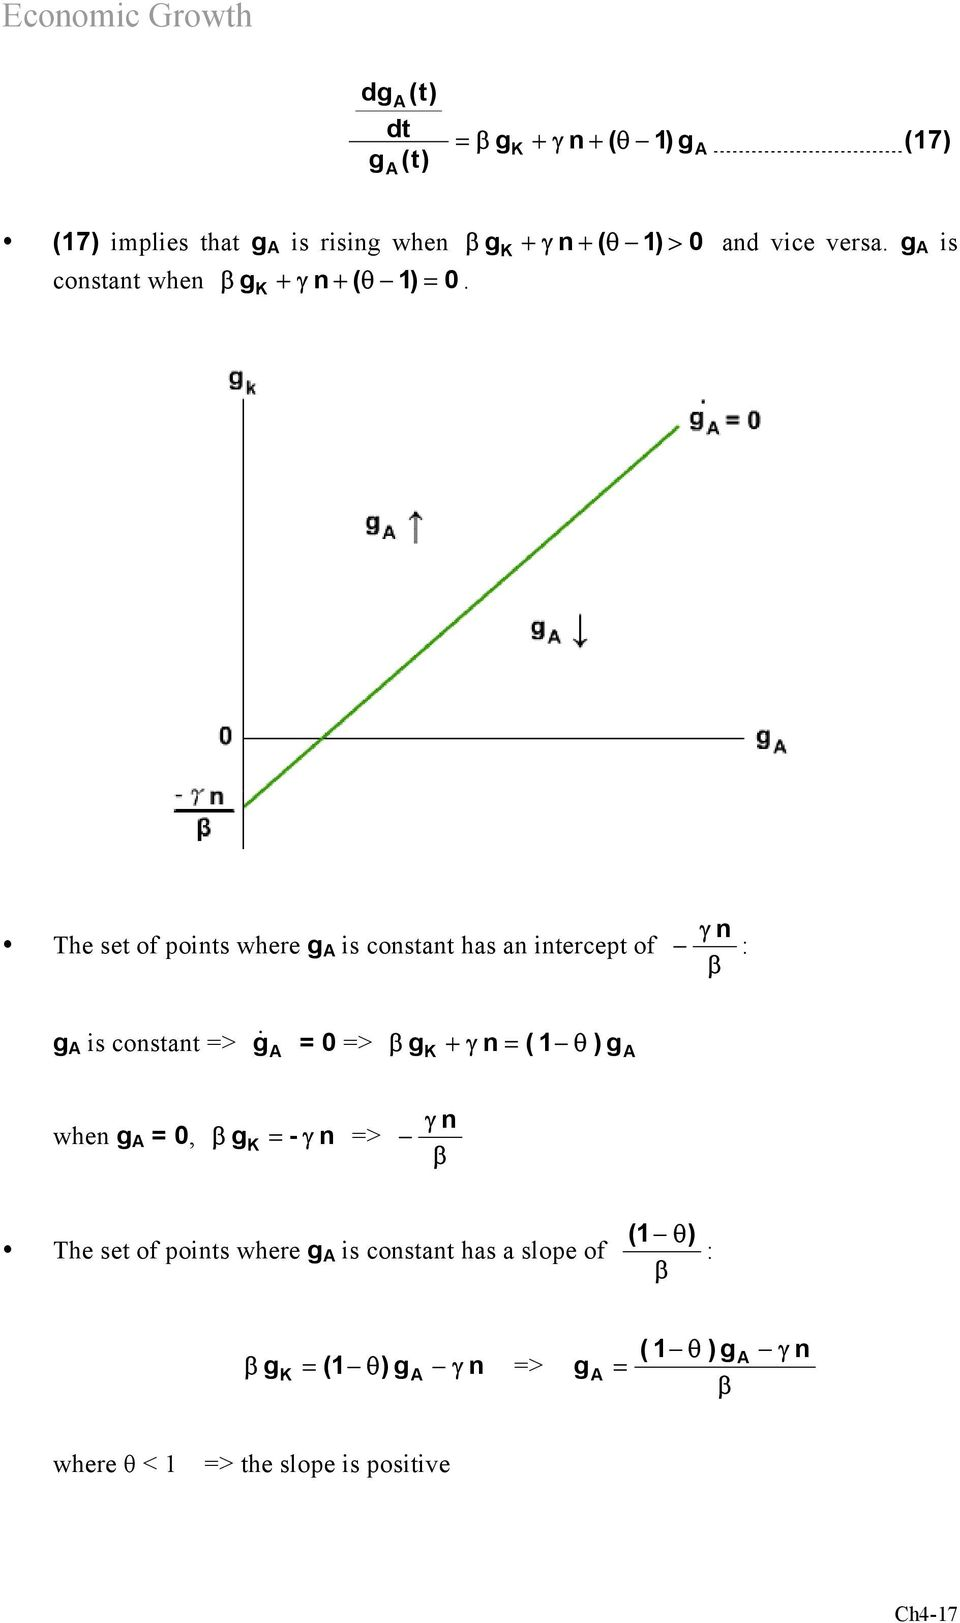 The set of points where g is constant has an intercept of n : g is constant => g& = 0 => g + n = ( 1 θ )